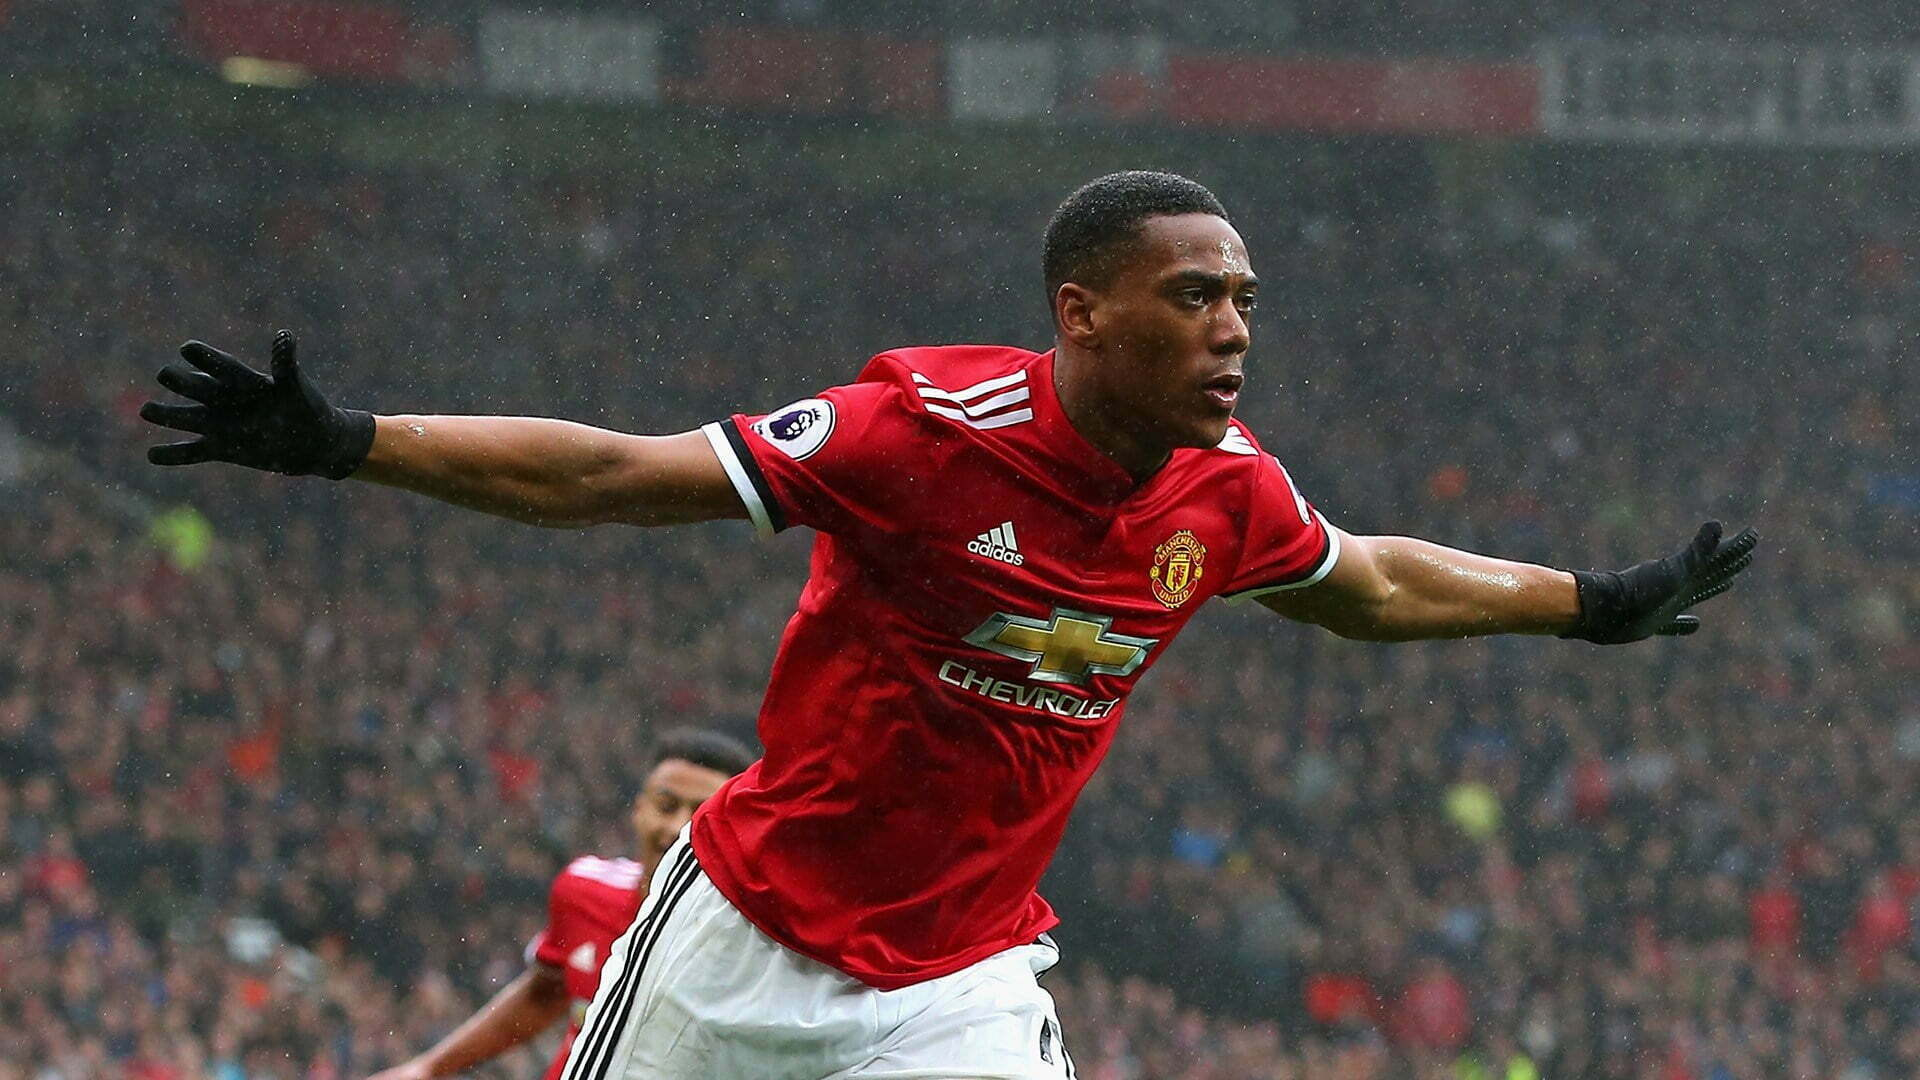 Mercato Frenchies : Martial dans le viseur de l'Inter Milan